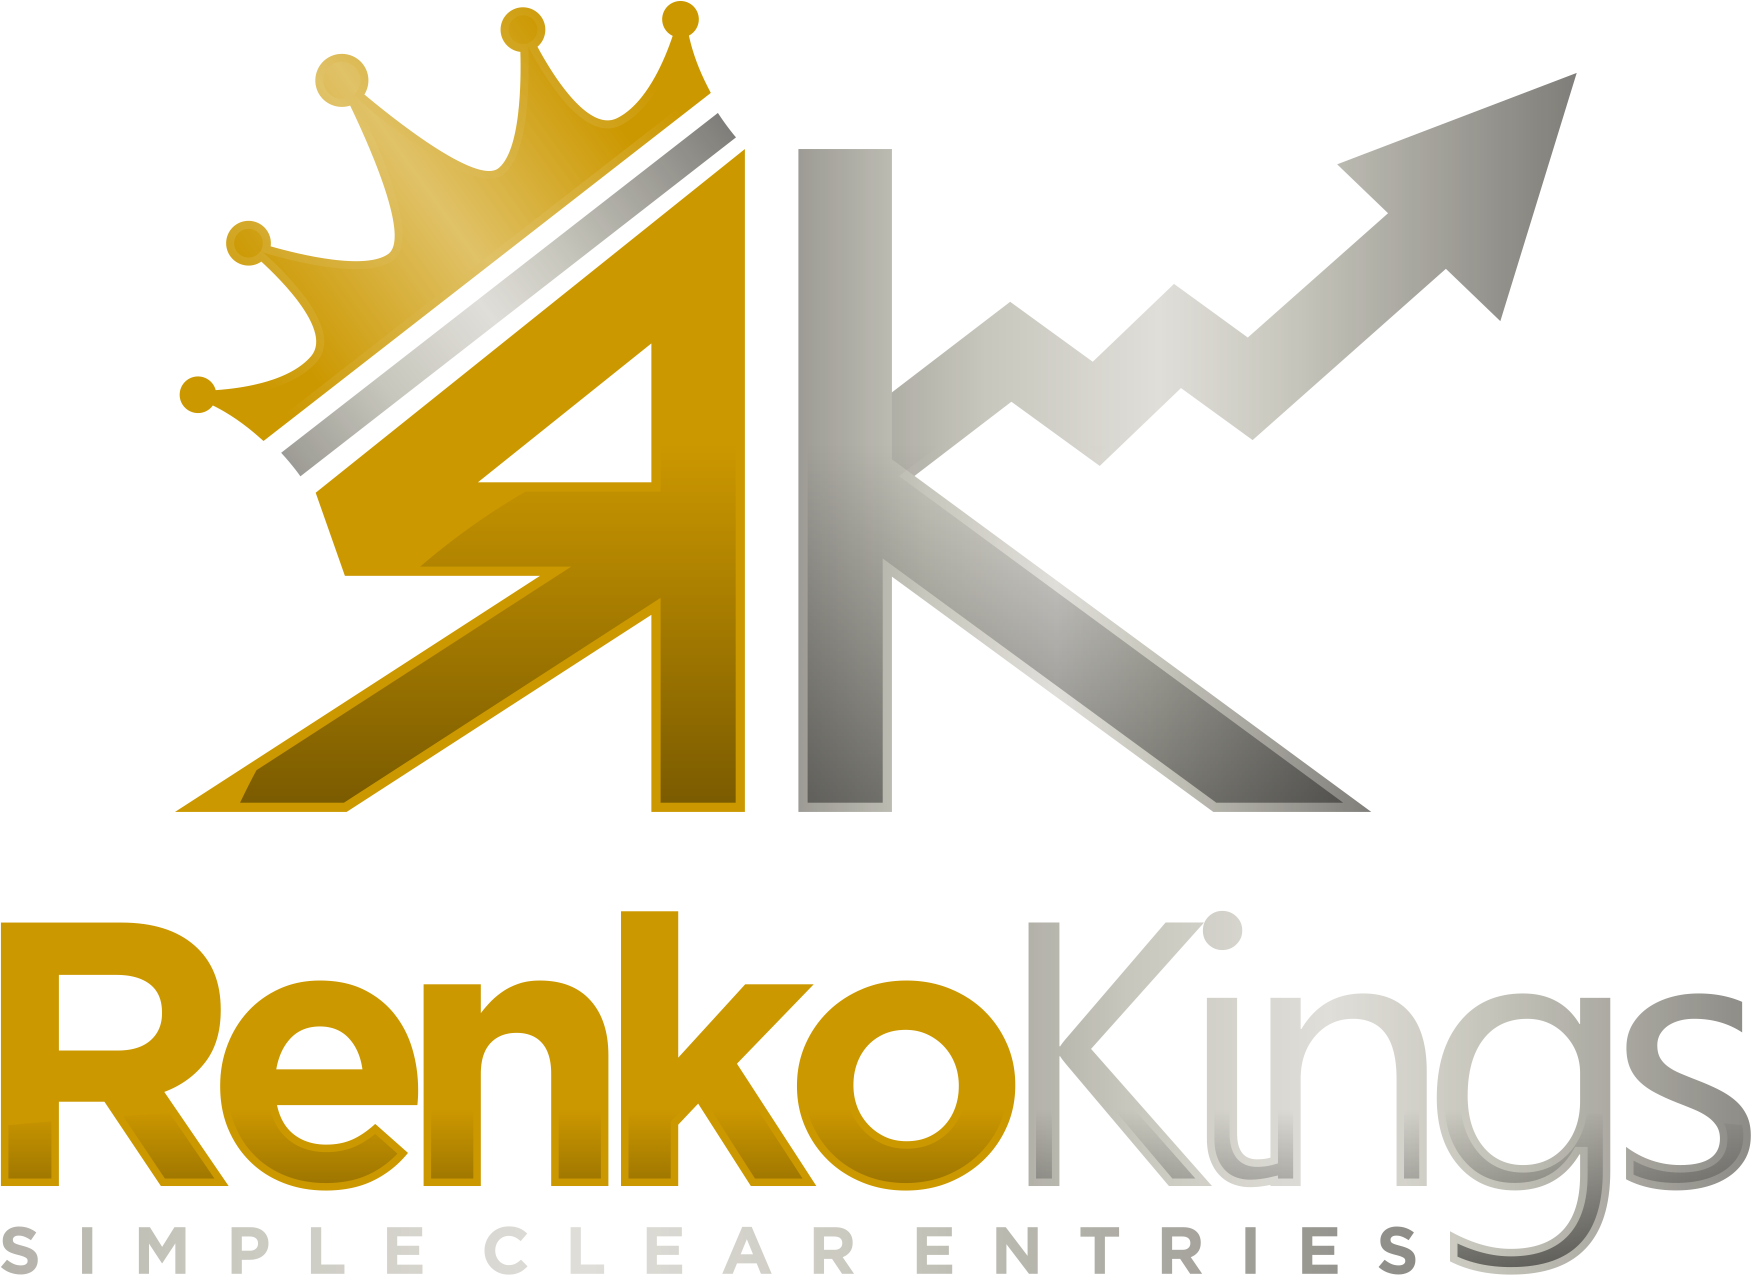 Renko kings – Simple, Clear Entries